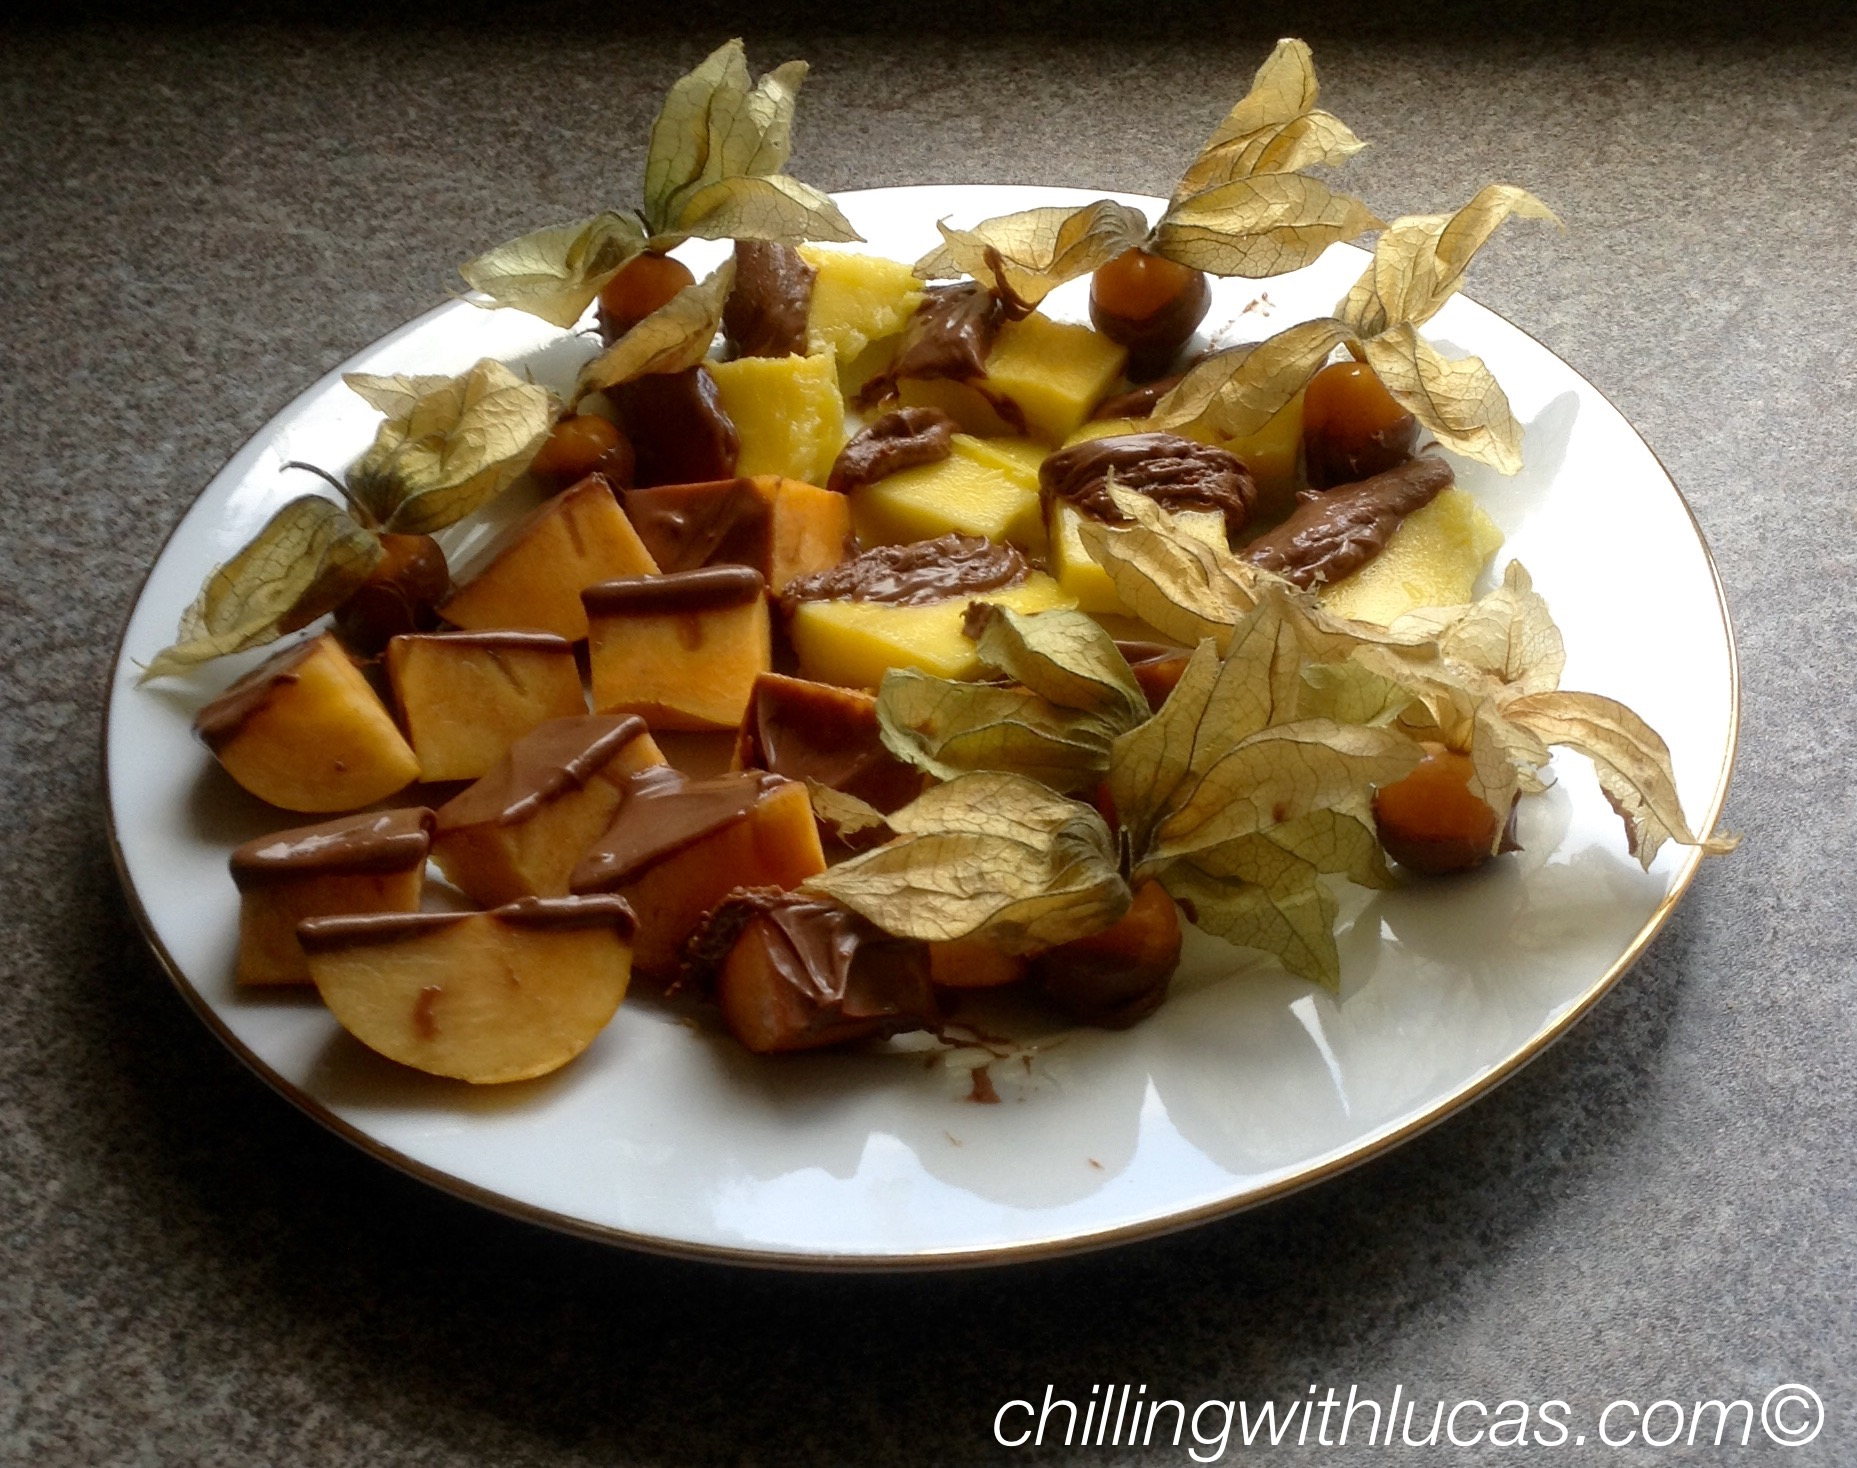 a selection of fruit cut up on a plate drizzled in chcolate